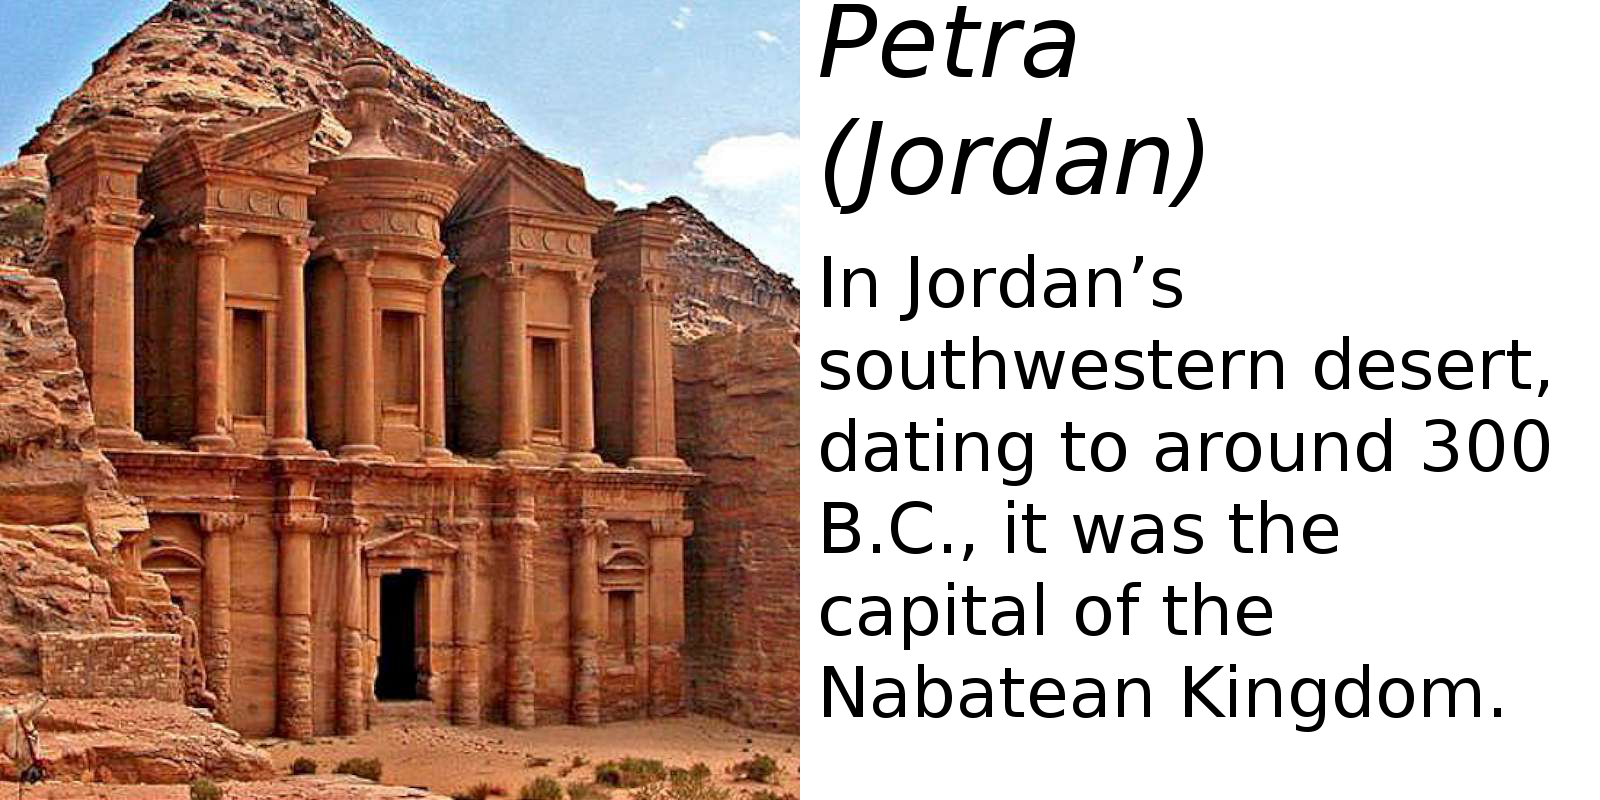 Petra, Jordan (description) #2